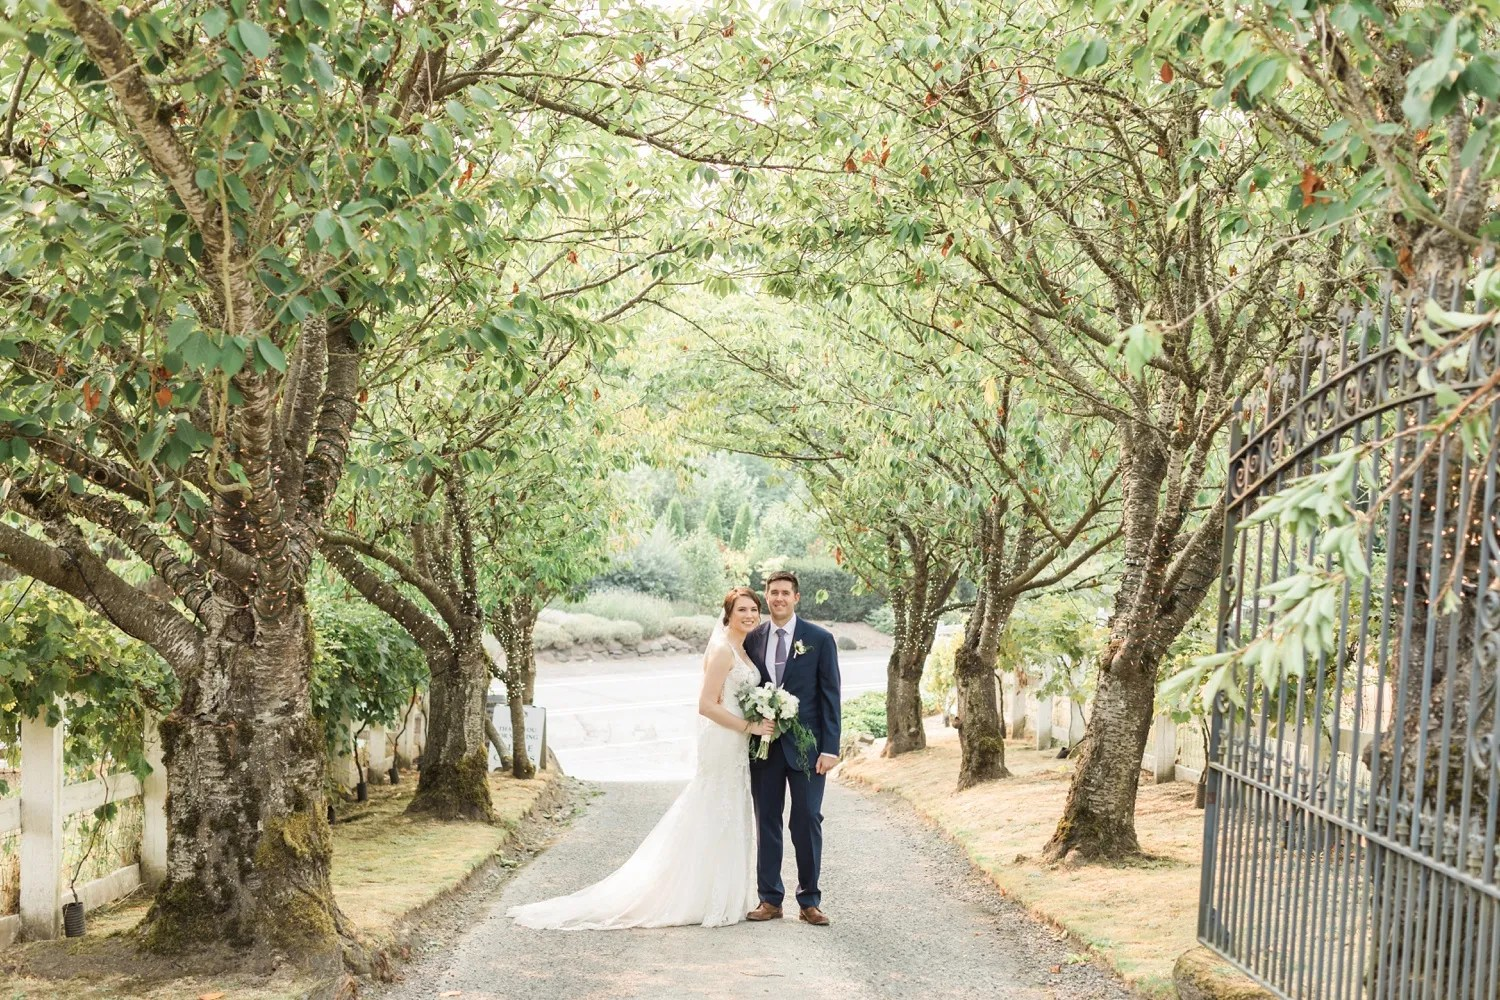 A bride and groom stand at an entrance way before their wedding at Chateau Lill in Woodinville, a wedding venue near Seattle, WA.   Joanna Monger Photography   Seattle & Snohomish Photographer